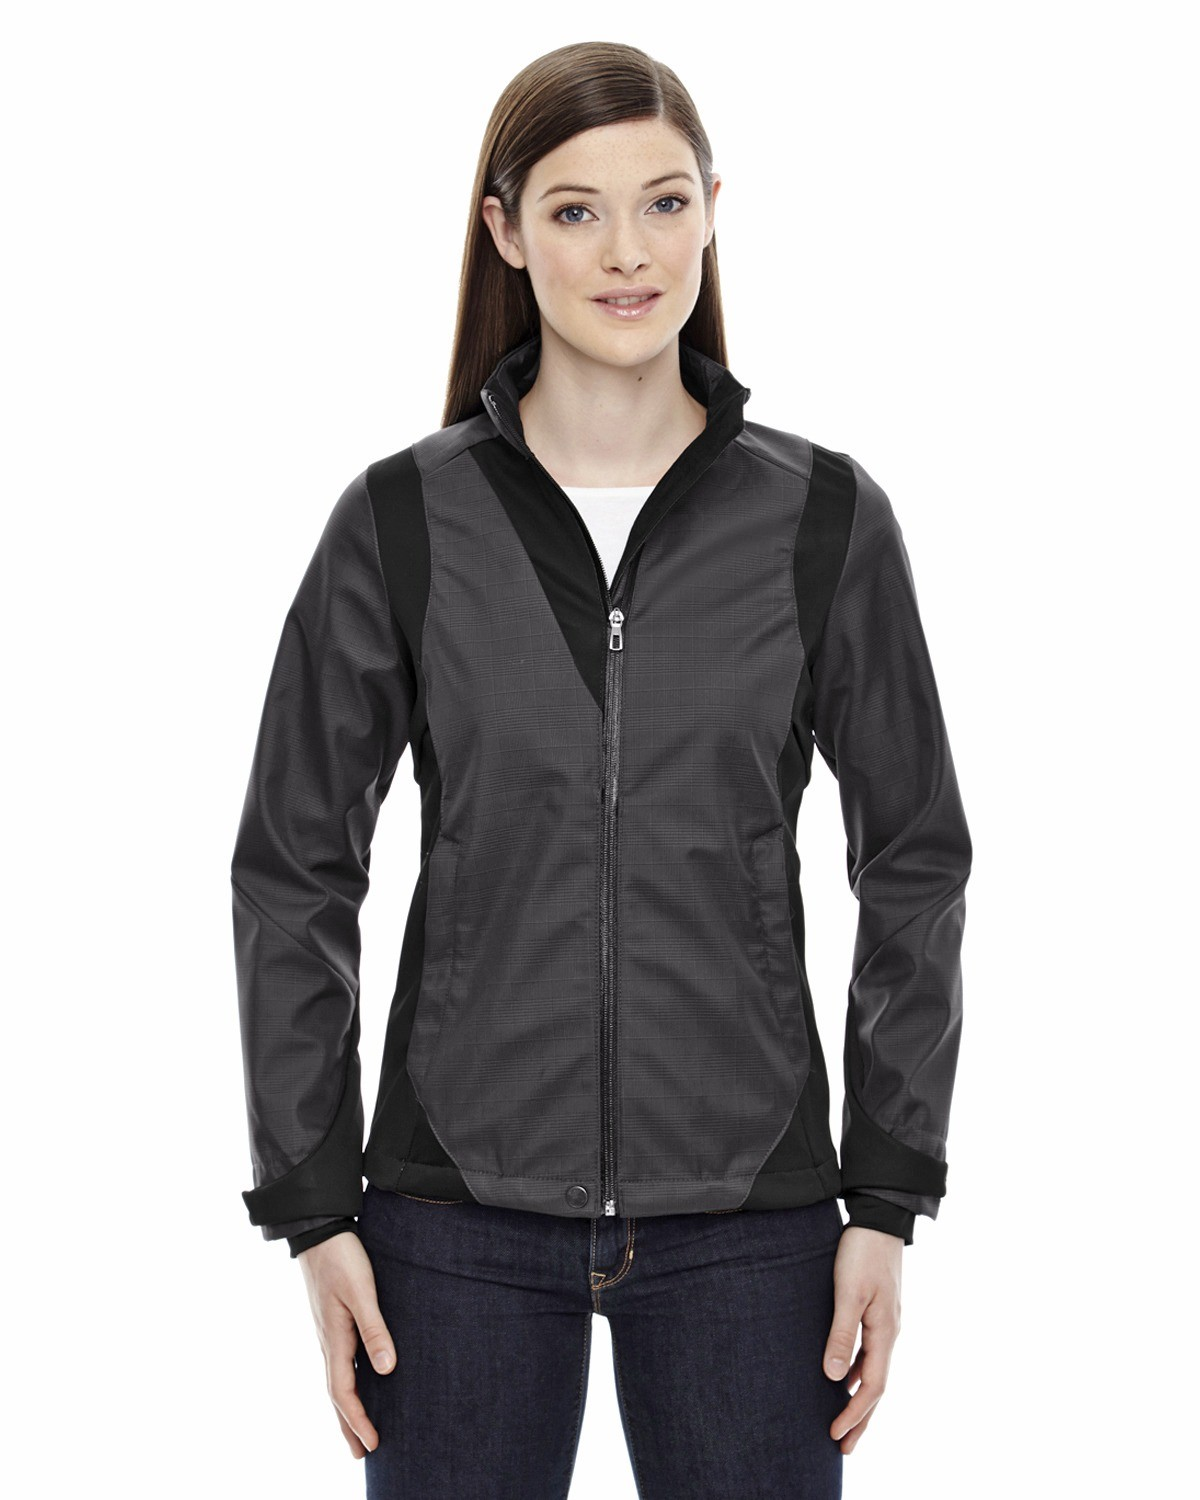 Ladies' Commute Three-Layer Light Bonded Two-Tone Soft Shell Jacket with Heat Reflect Technology